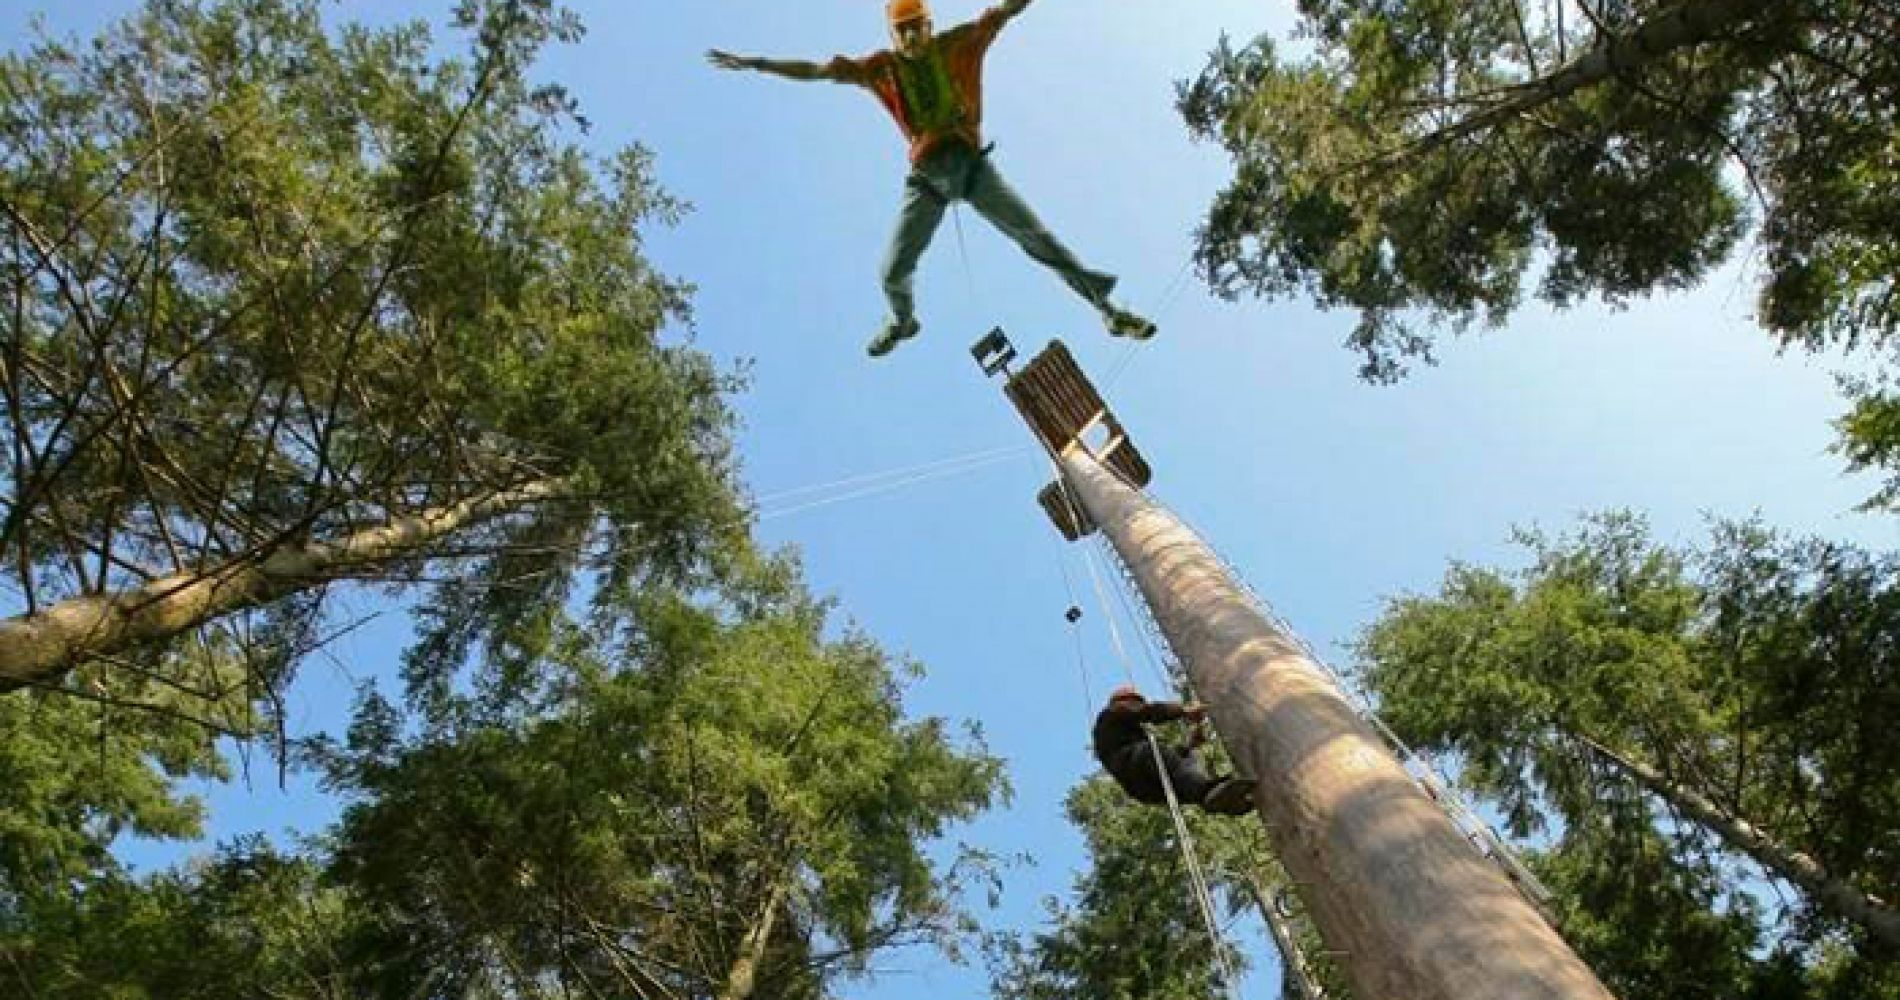 Bungee jump in a Giant Redwood Forest